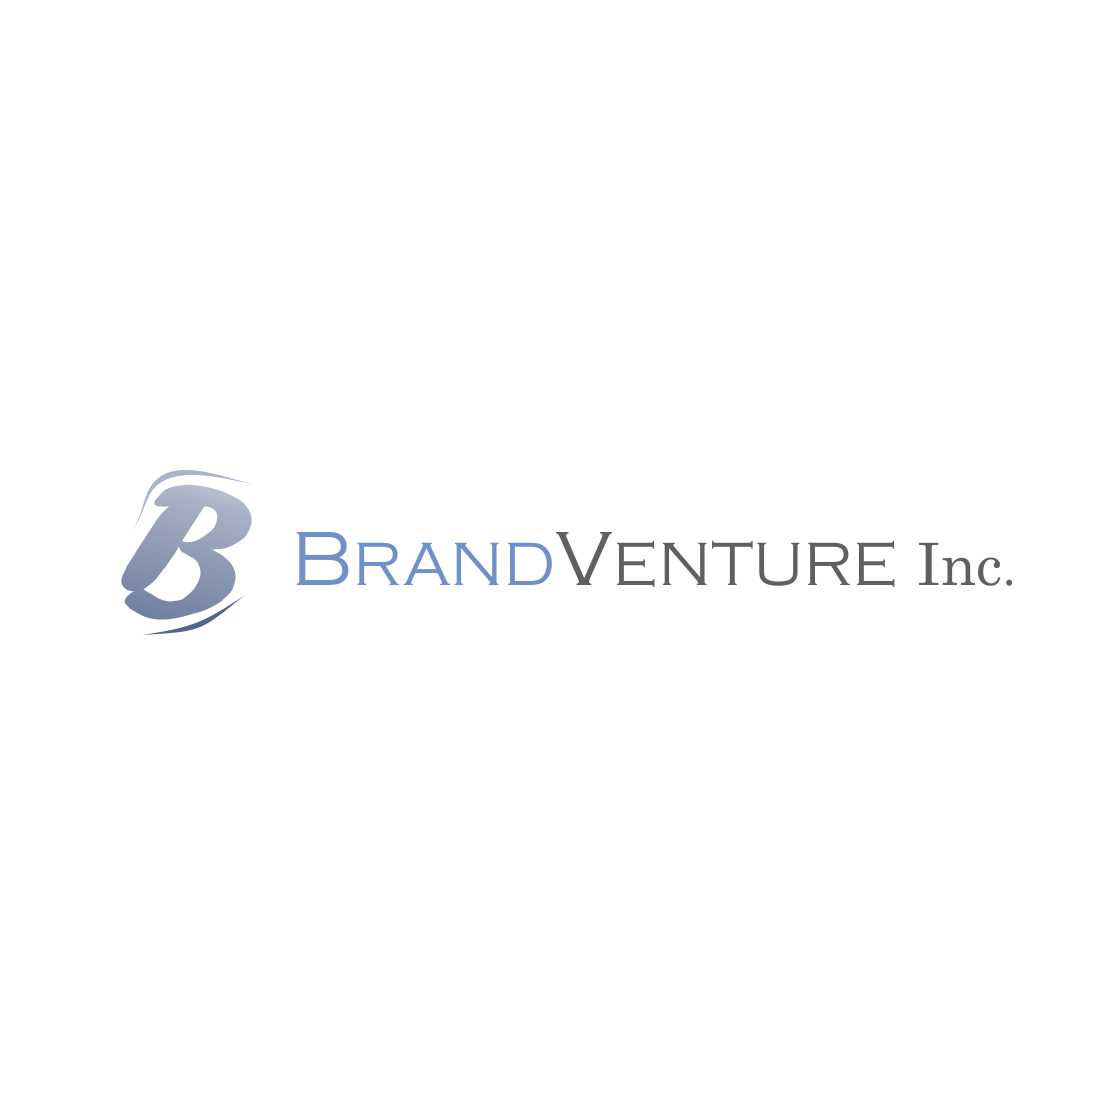 Logo Design by robbiemack - Entry No. 20 in the Logo Design Contest BRANDVENTURE Inc..